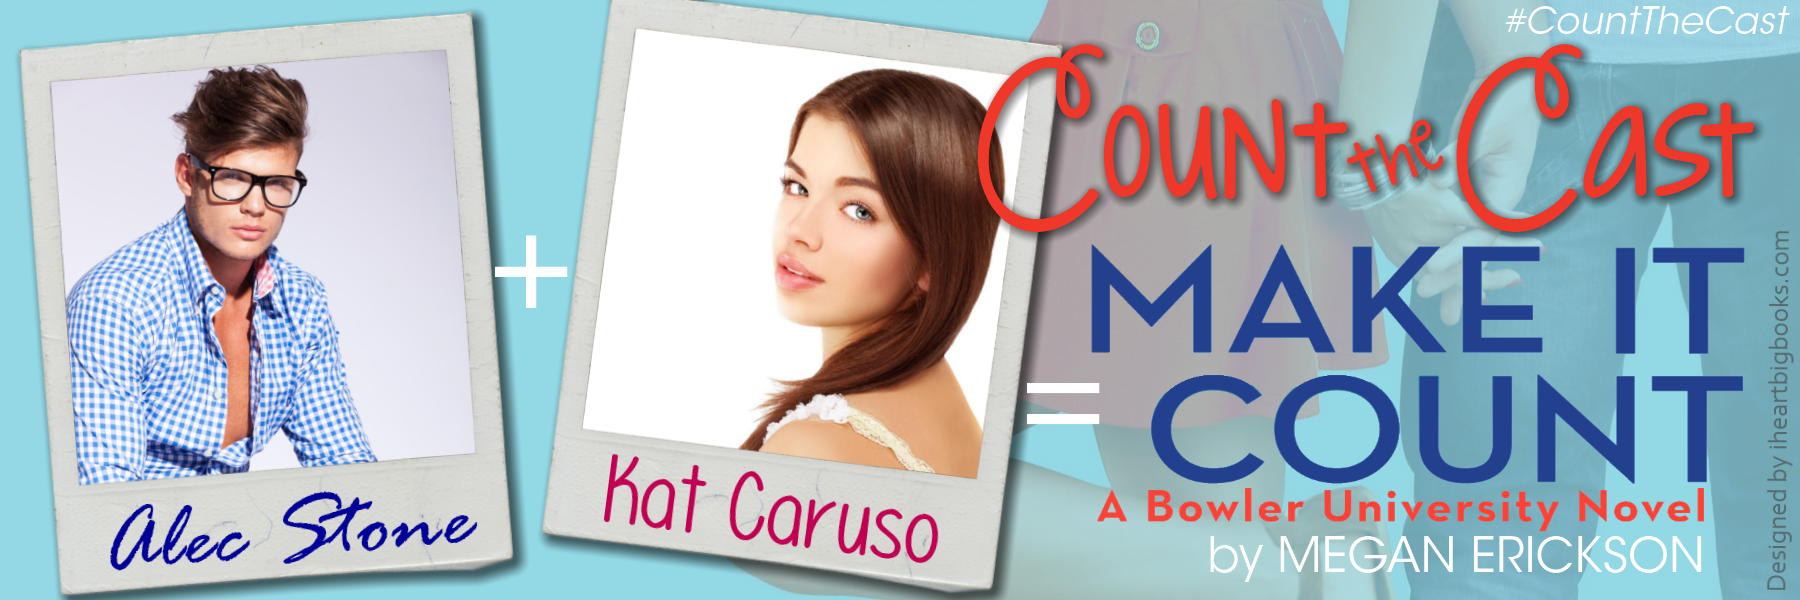 Megan Erickson - Make it Count - Count the Cast